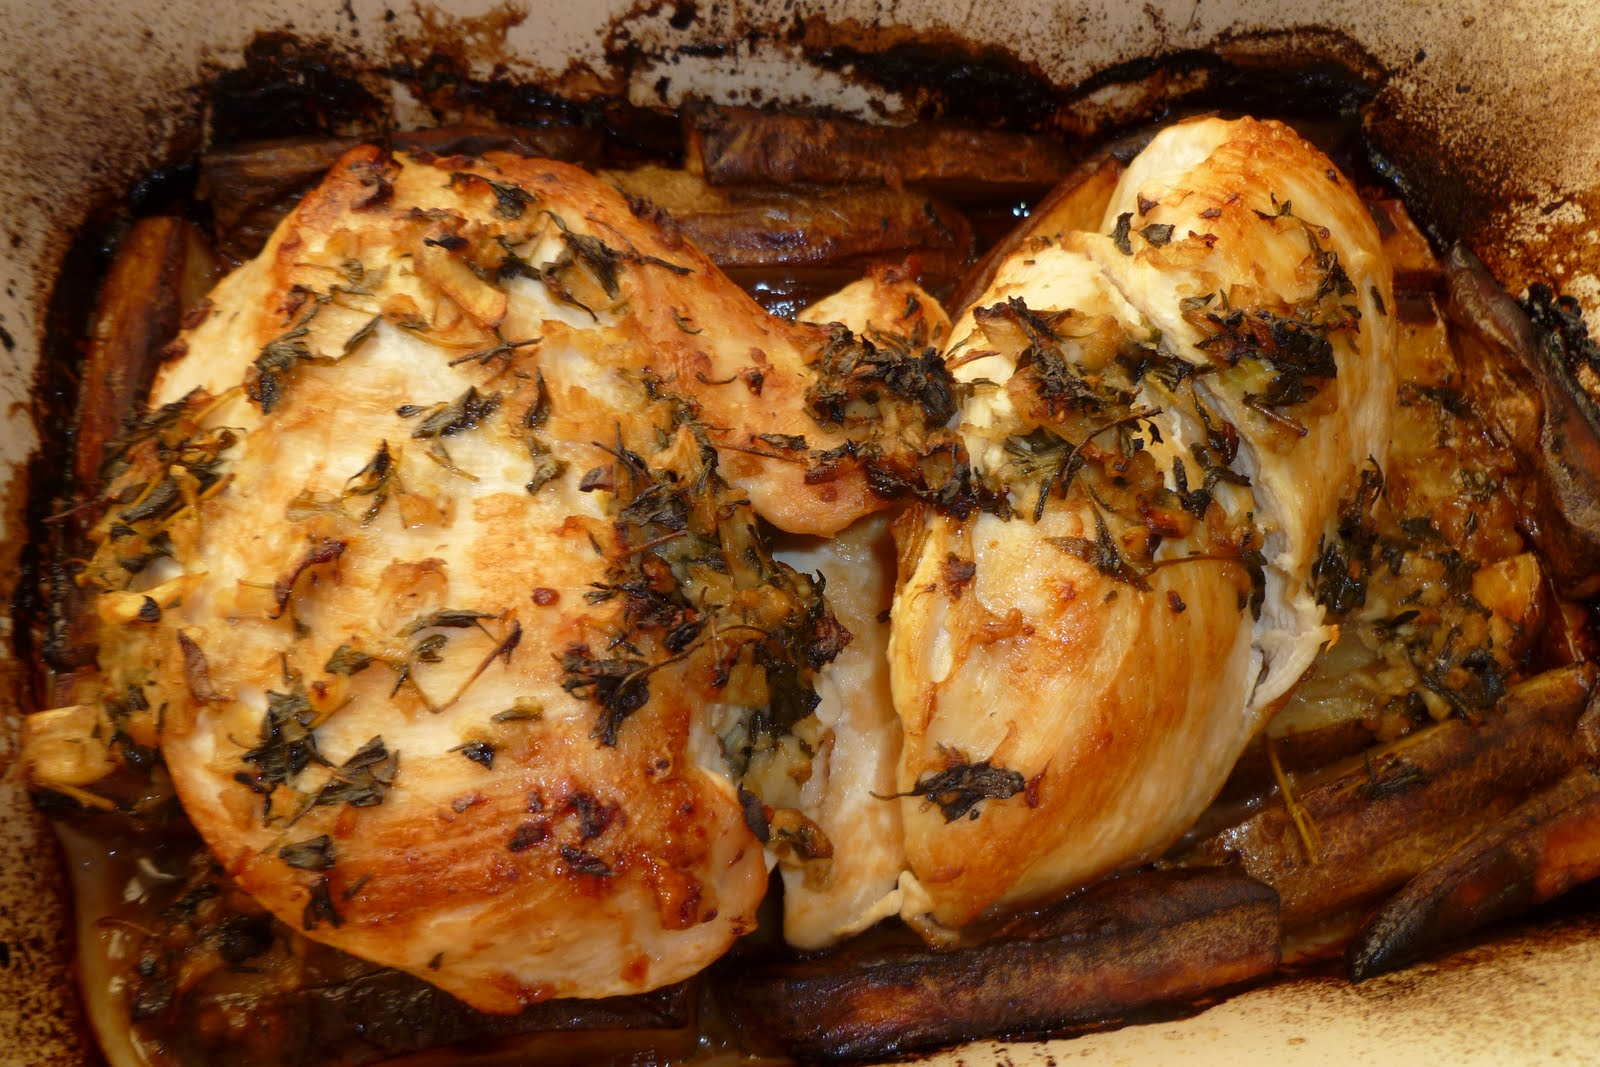 The Pastry Chef's Baking: Chicken Vesuvio